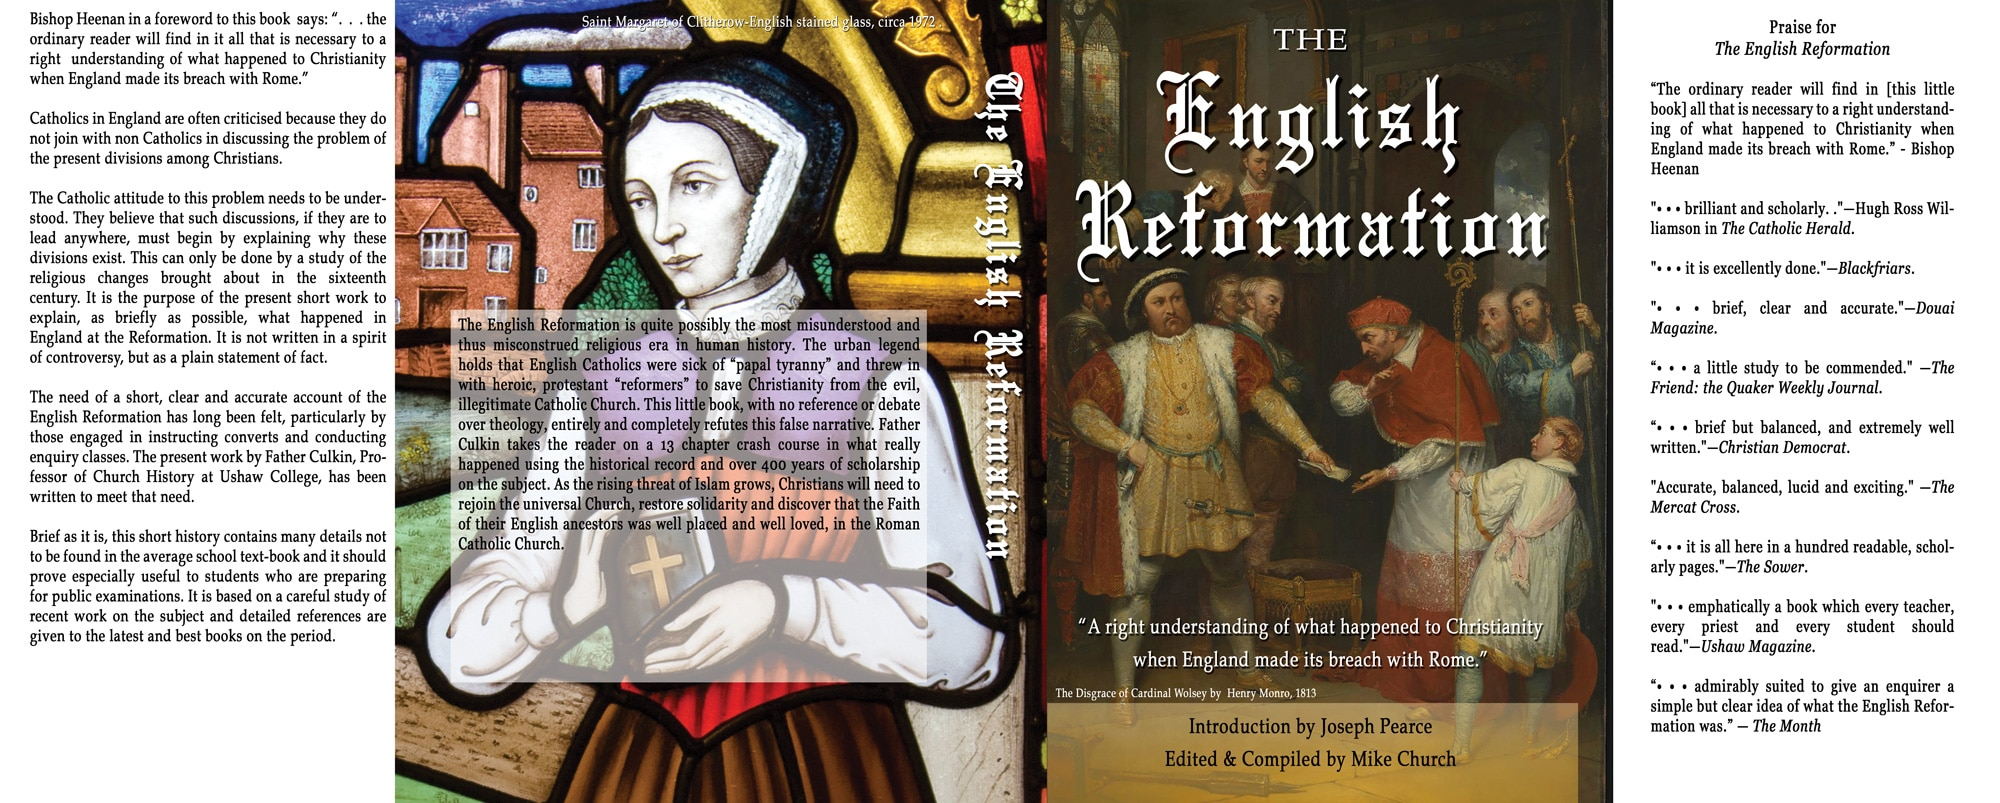 Mike Church's New Book-The English Reformation-Pre-Order For Founder's Pass Members Only